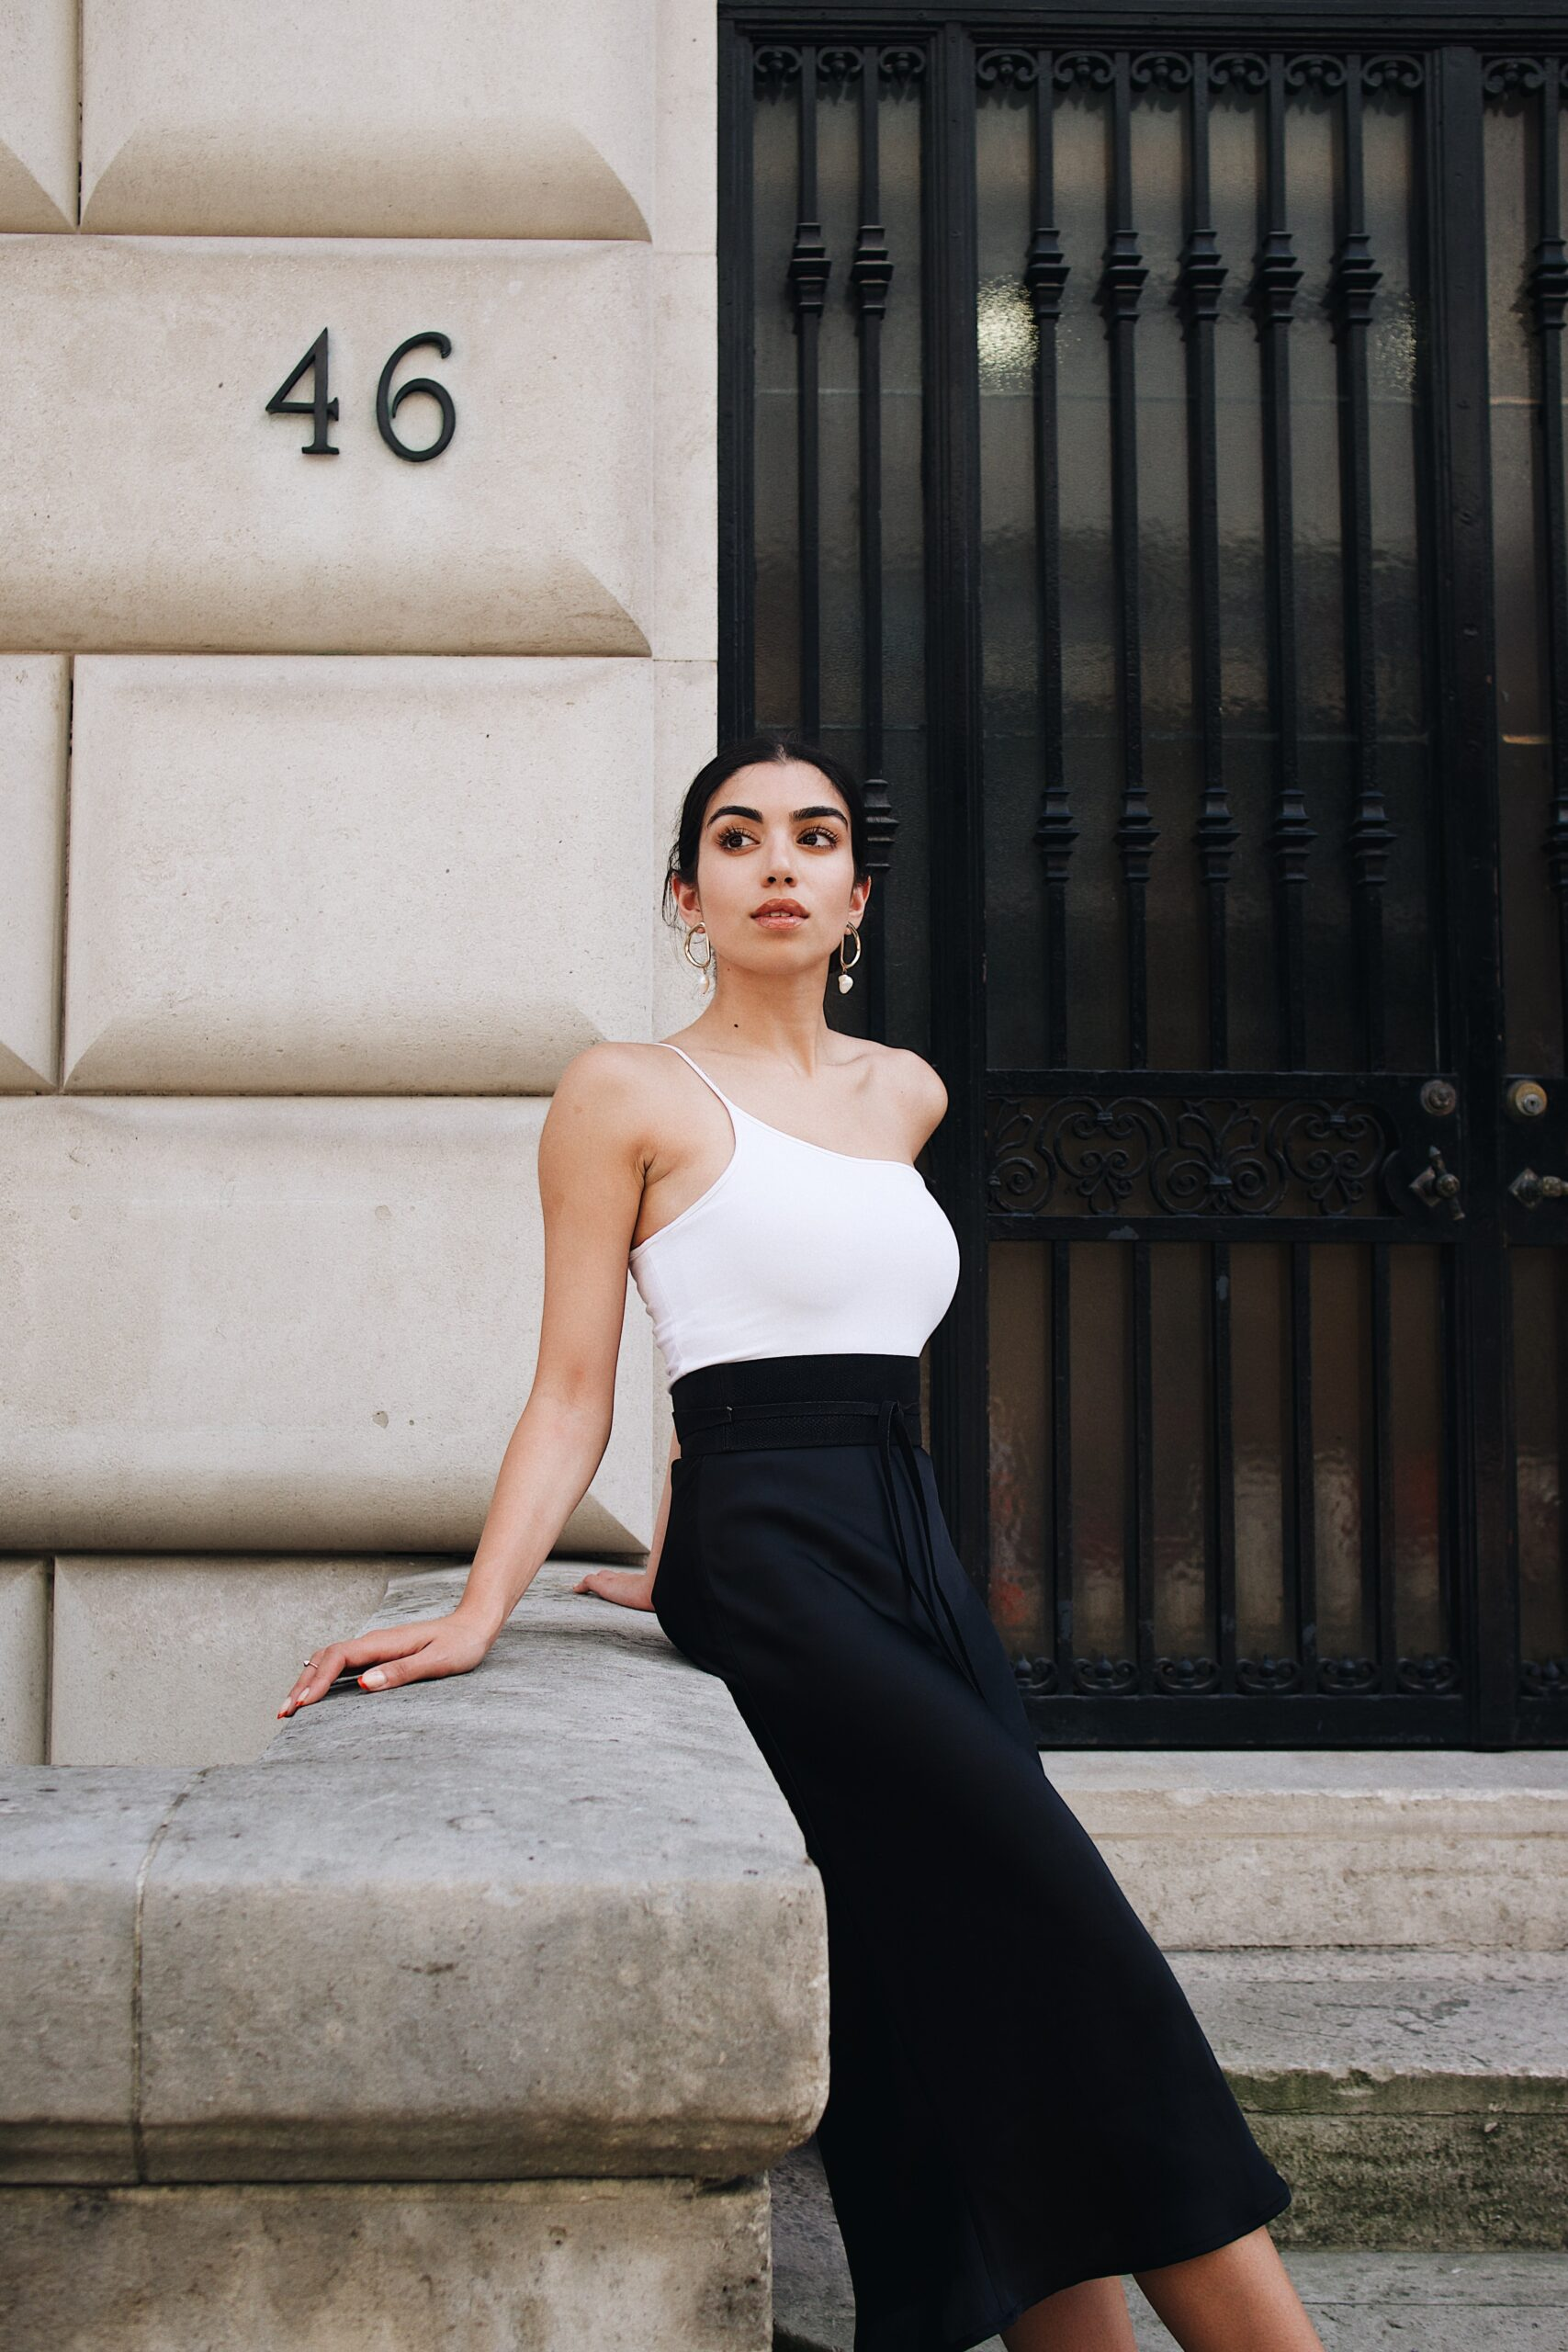 Connie-hiles-Woman in a white camisole and black dress leaning against rail of building entrance-unsplash